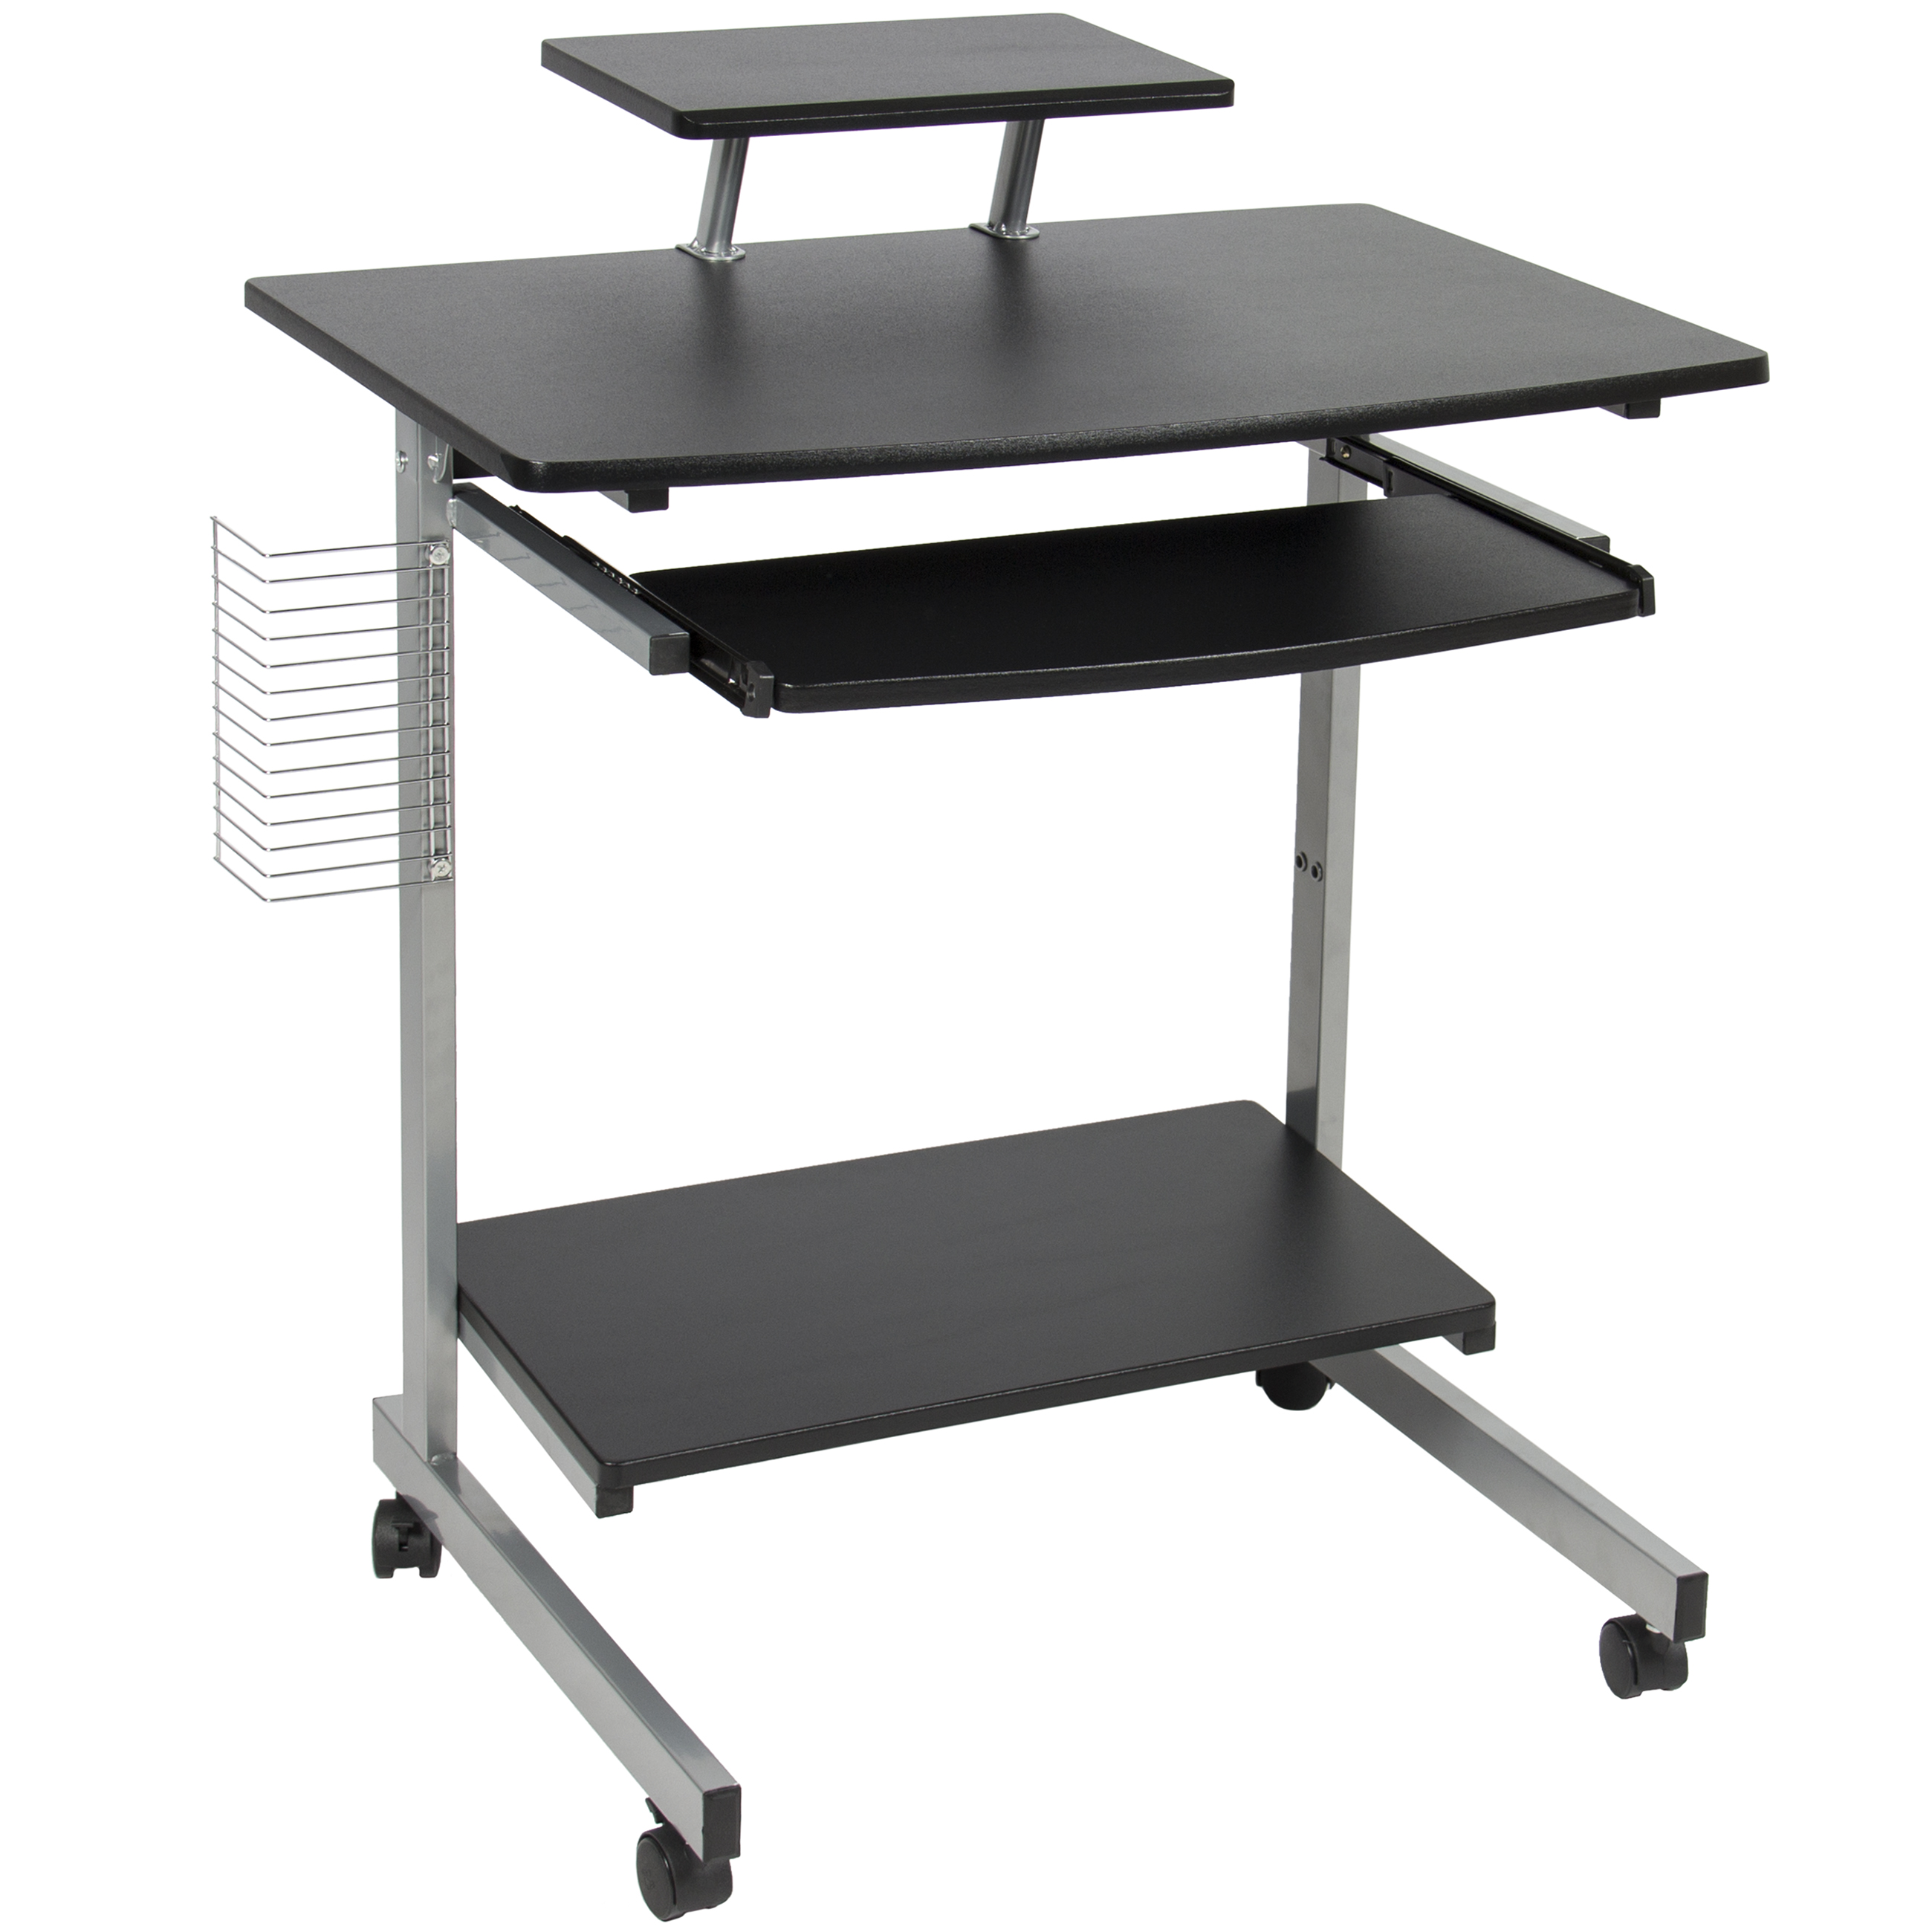 Delicieux Best Choice Products Portable Computer Desk Cart PC Laptop Table Study  Workstation W/ Built In Caster Wheels, CD/DVD Rack For Student, Dorm, Home  ...